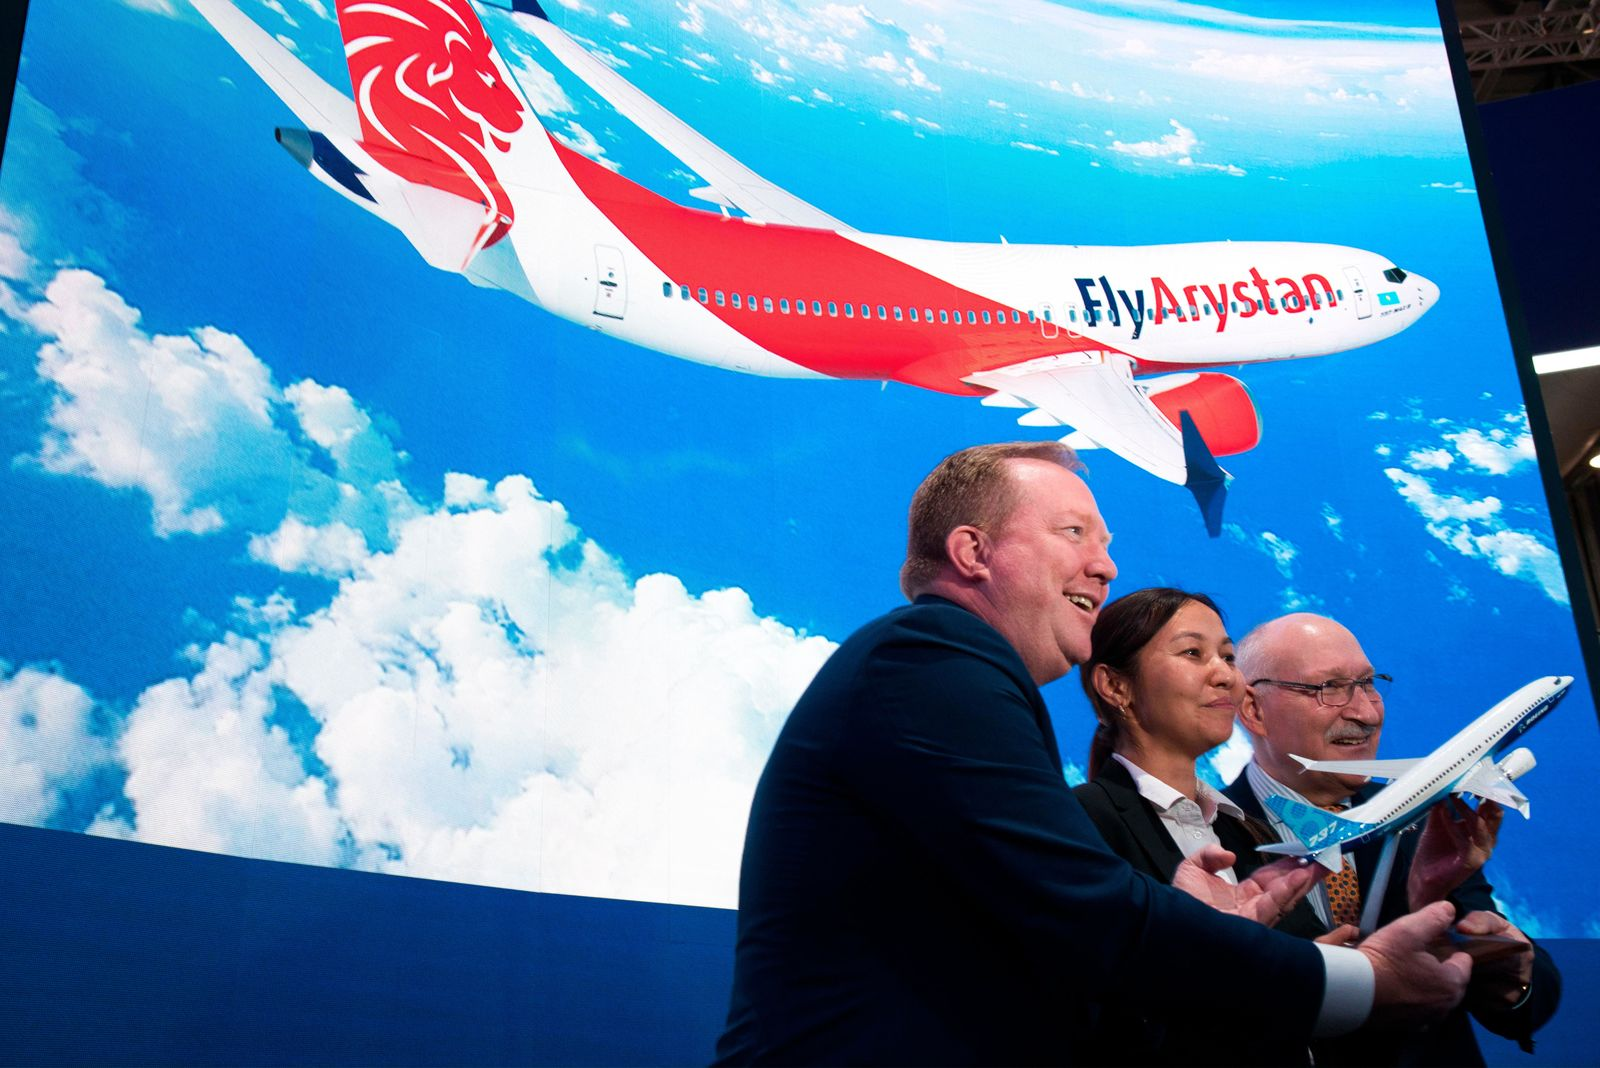 From left; Boeing Commercial Airplanes president and CEO Stanley A. Deal, Air Astana chief planning officer Alma Aliguzhinova and Air Astana chief operating officer Anthony Regan pose after a news conference at the Dubai Airshow in Dubai, United Arab Emirates, Tuesday, Nov. 19, 2019. (AP Photo/Jon Gambrell)